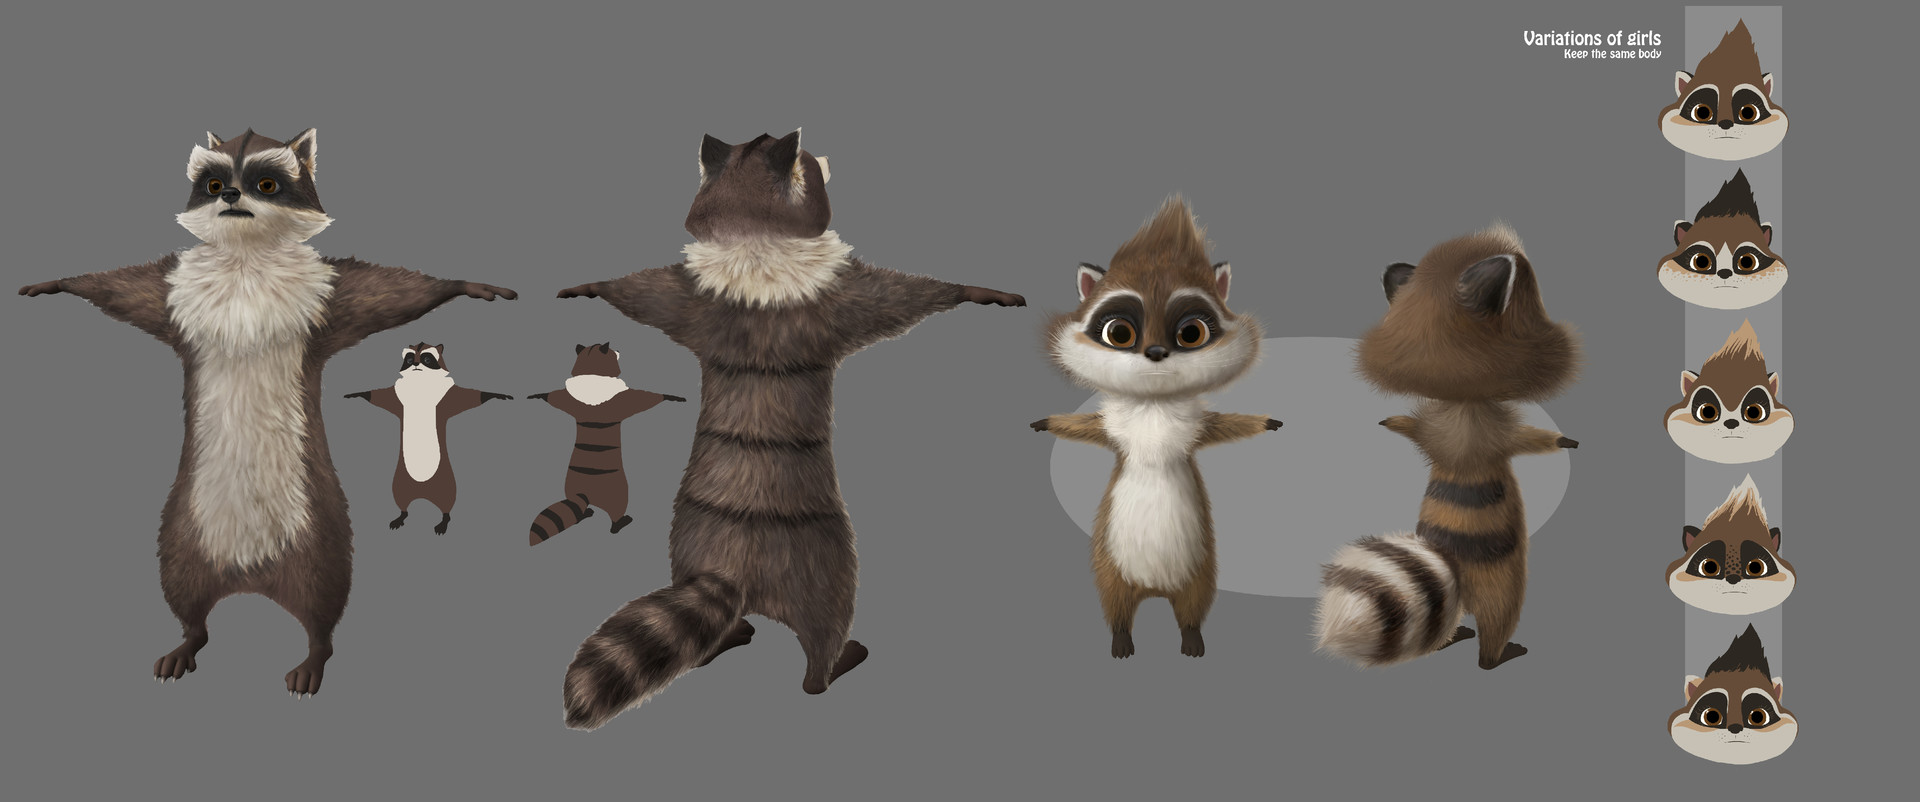 ArtStation - Raccoon look - Son of Bigfoot, Chully Bunny